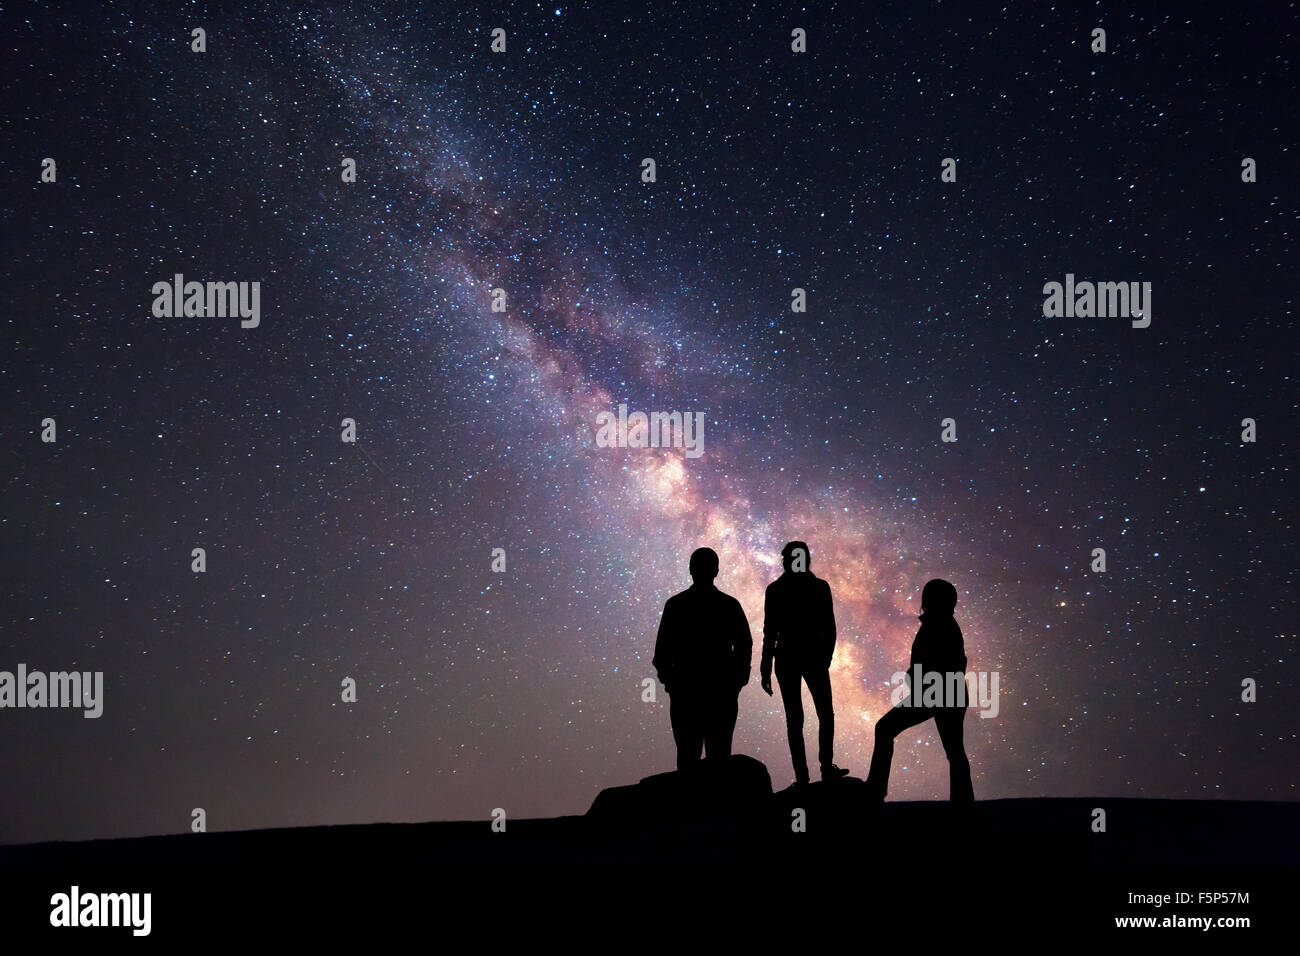 Milky Way. Night sky with stars and silhouette of a happy family with raised-up arms - Stock Image